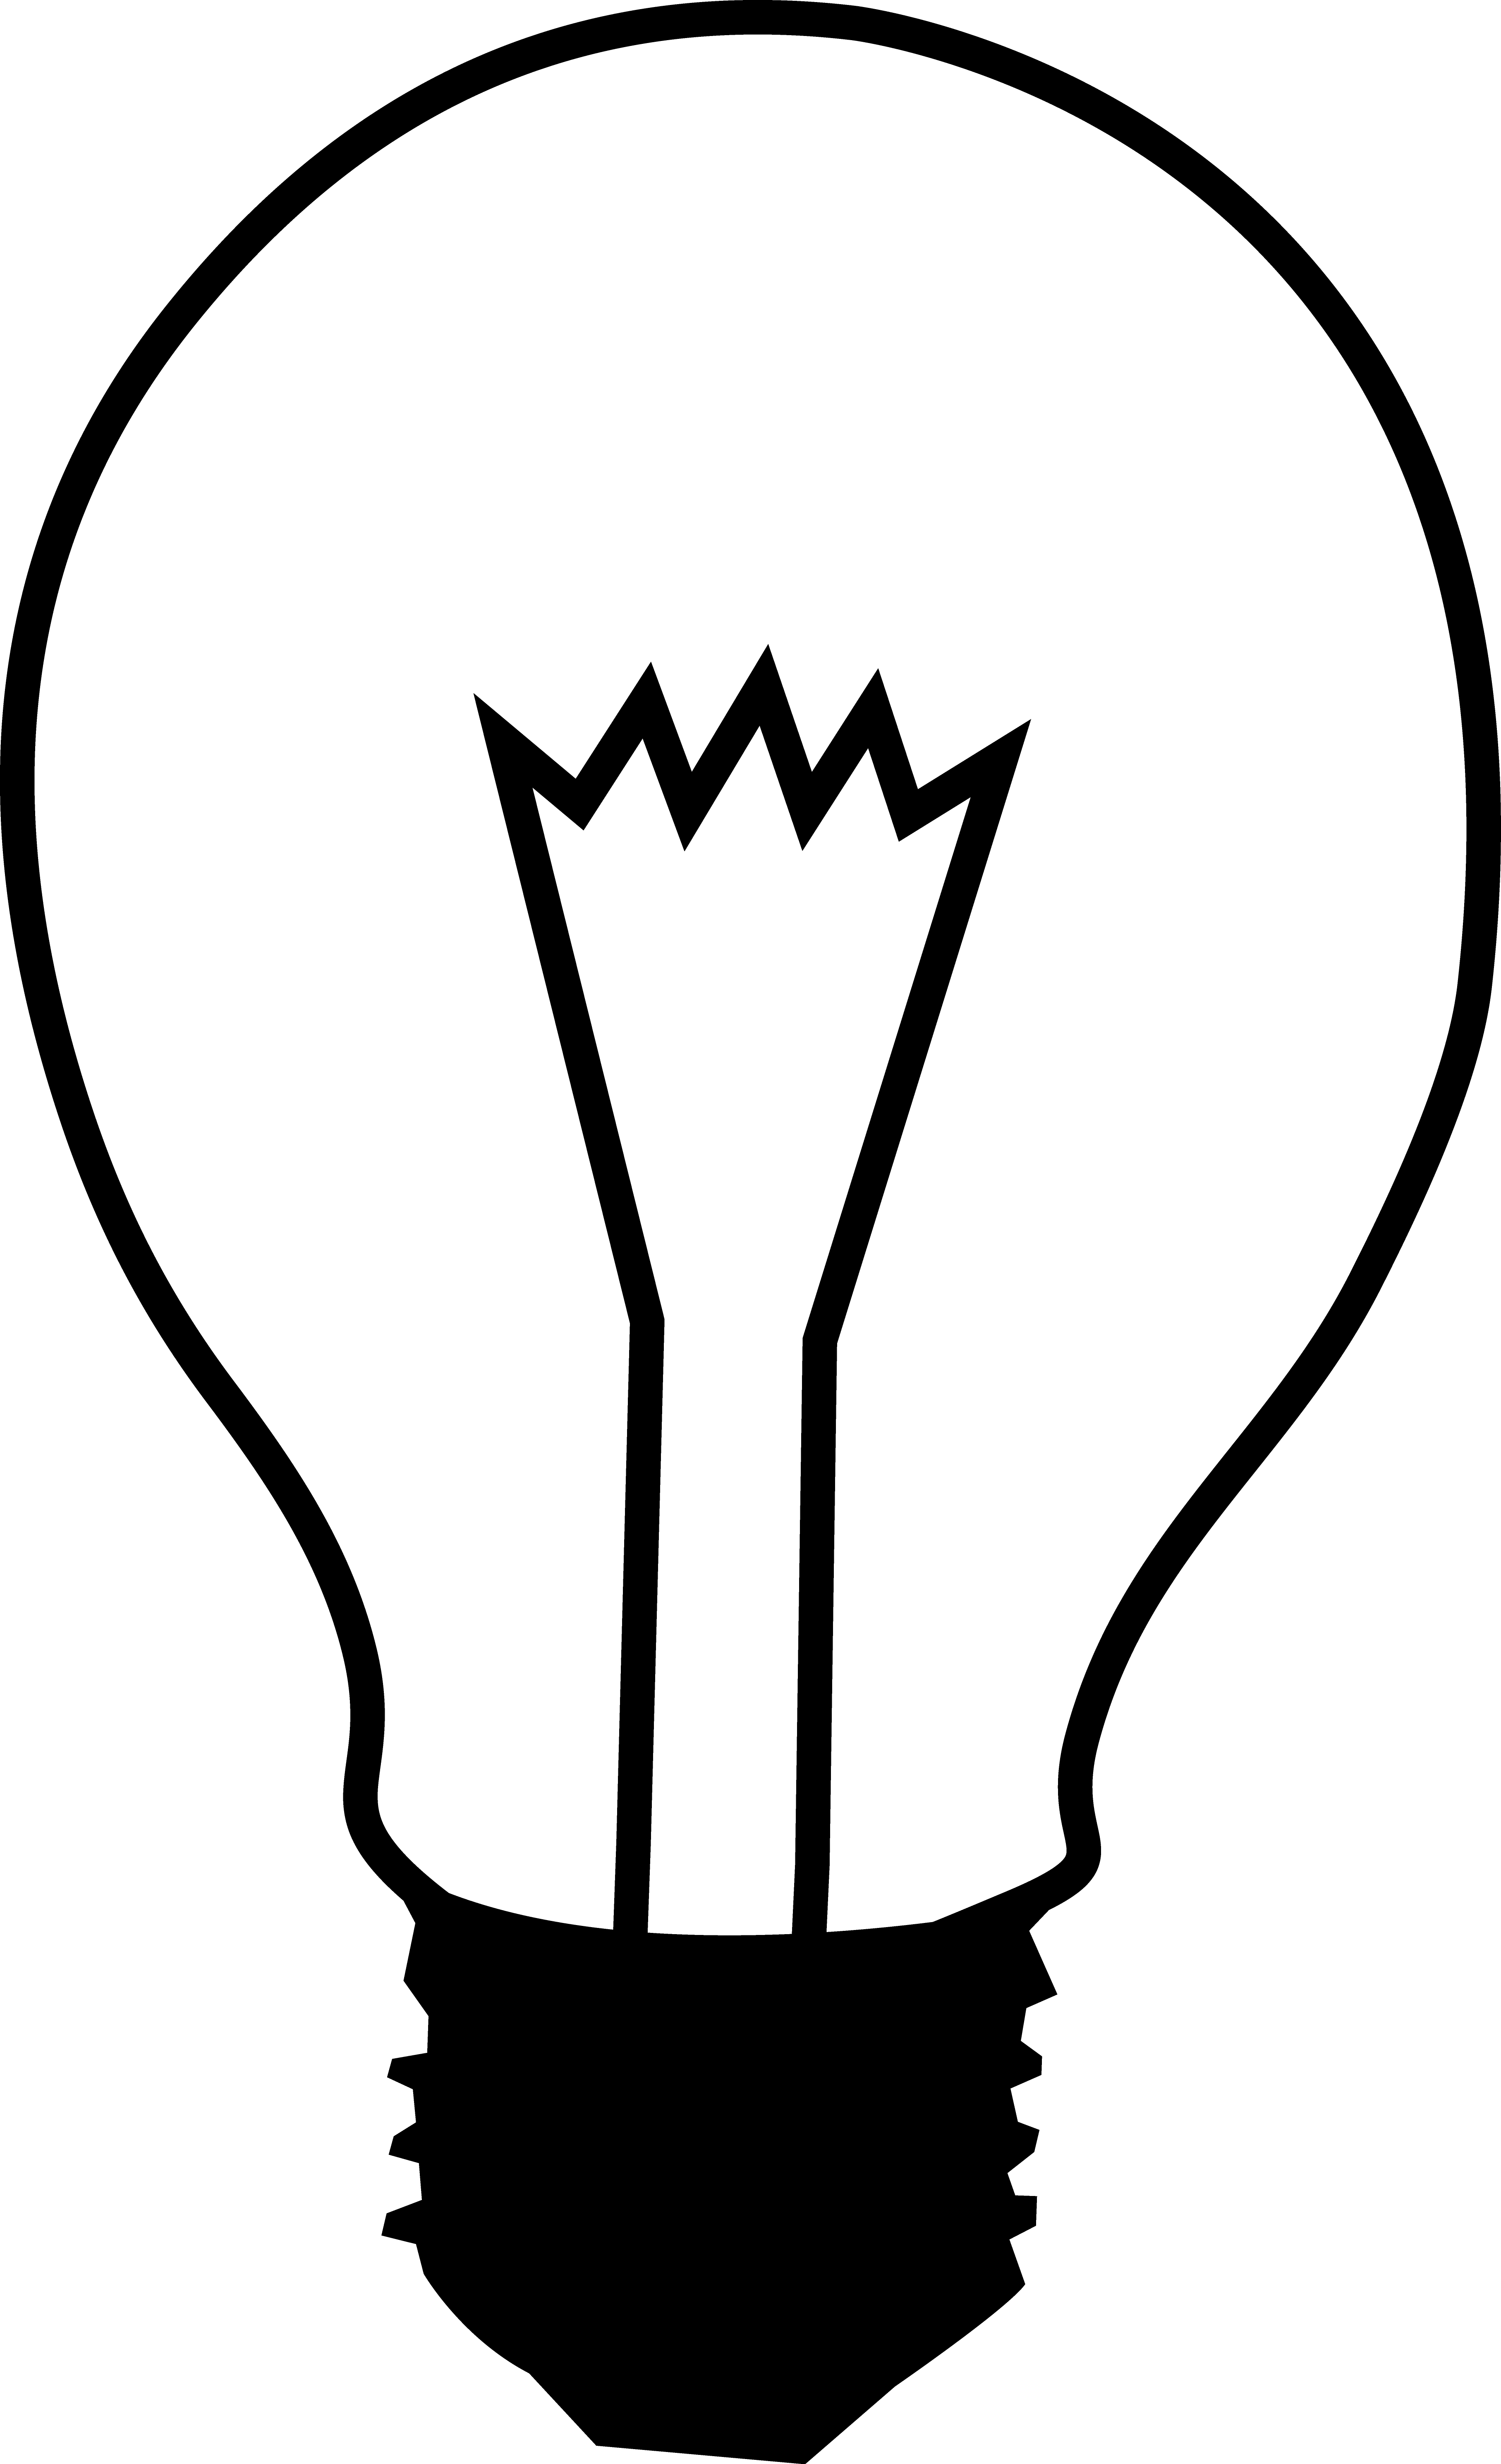 3629x5957 Simple Black And White Light Bulb